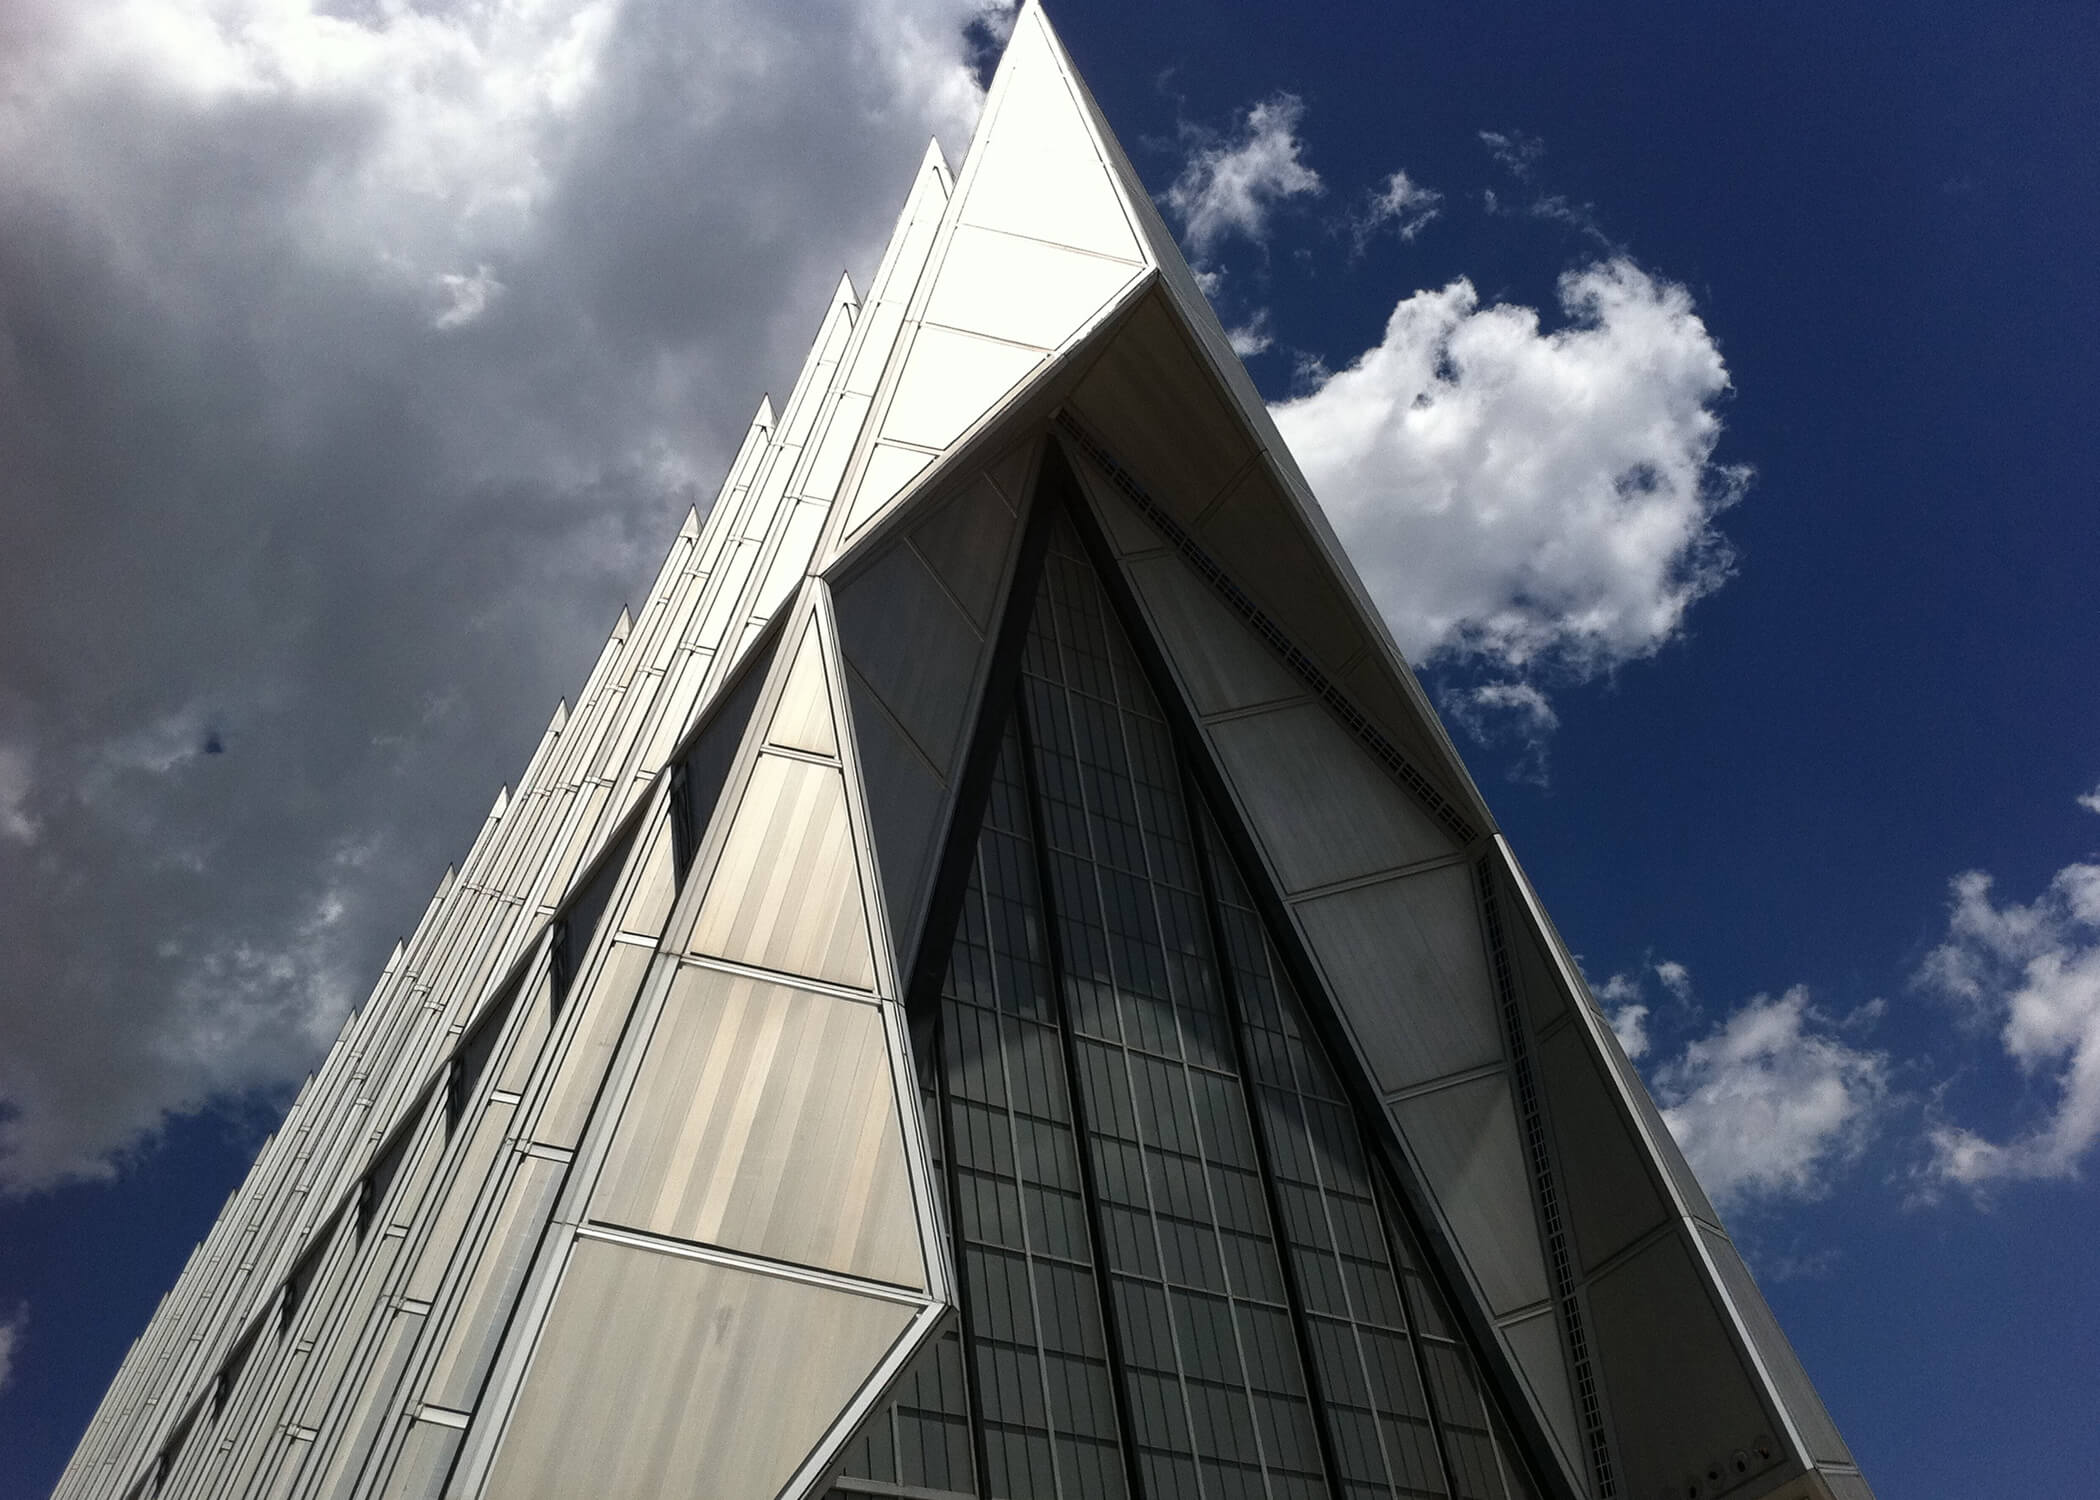 Image of the spires atop the cadet chapel at the U.S. Air Force Academy.